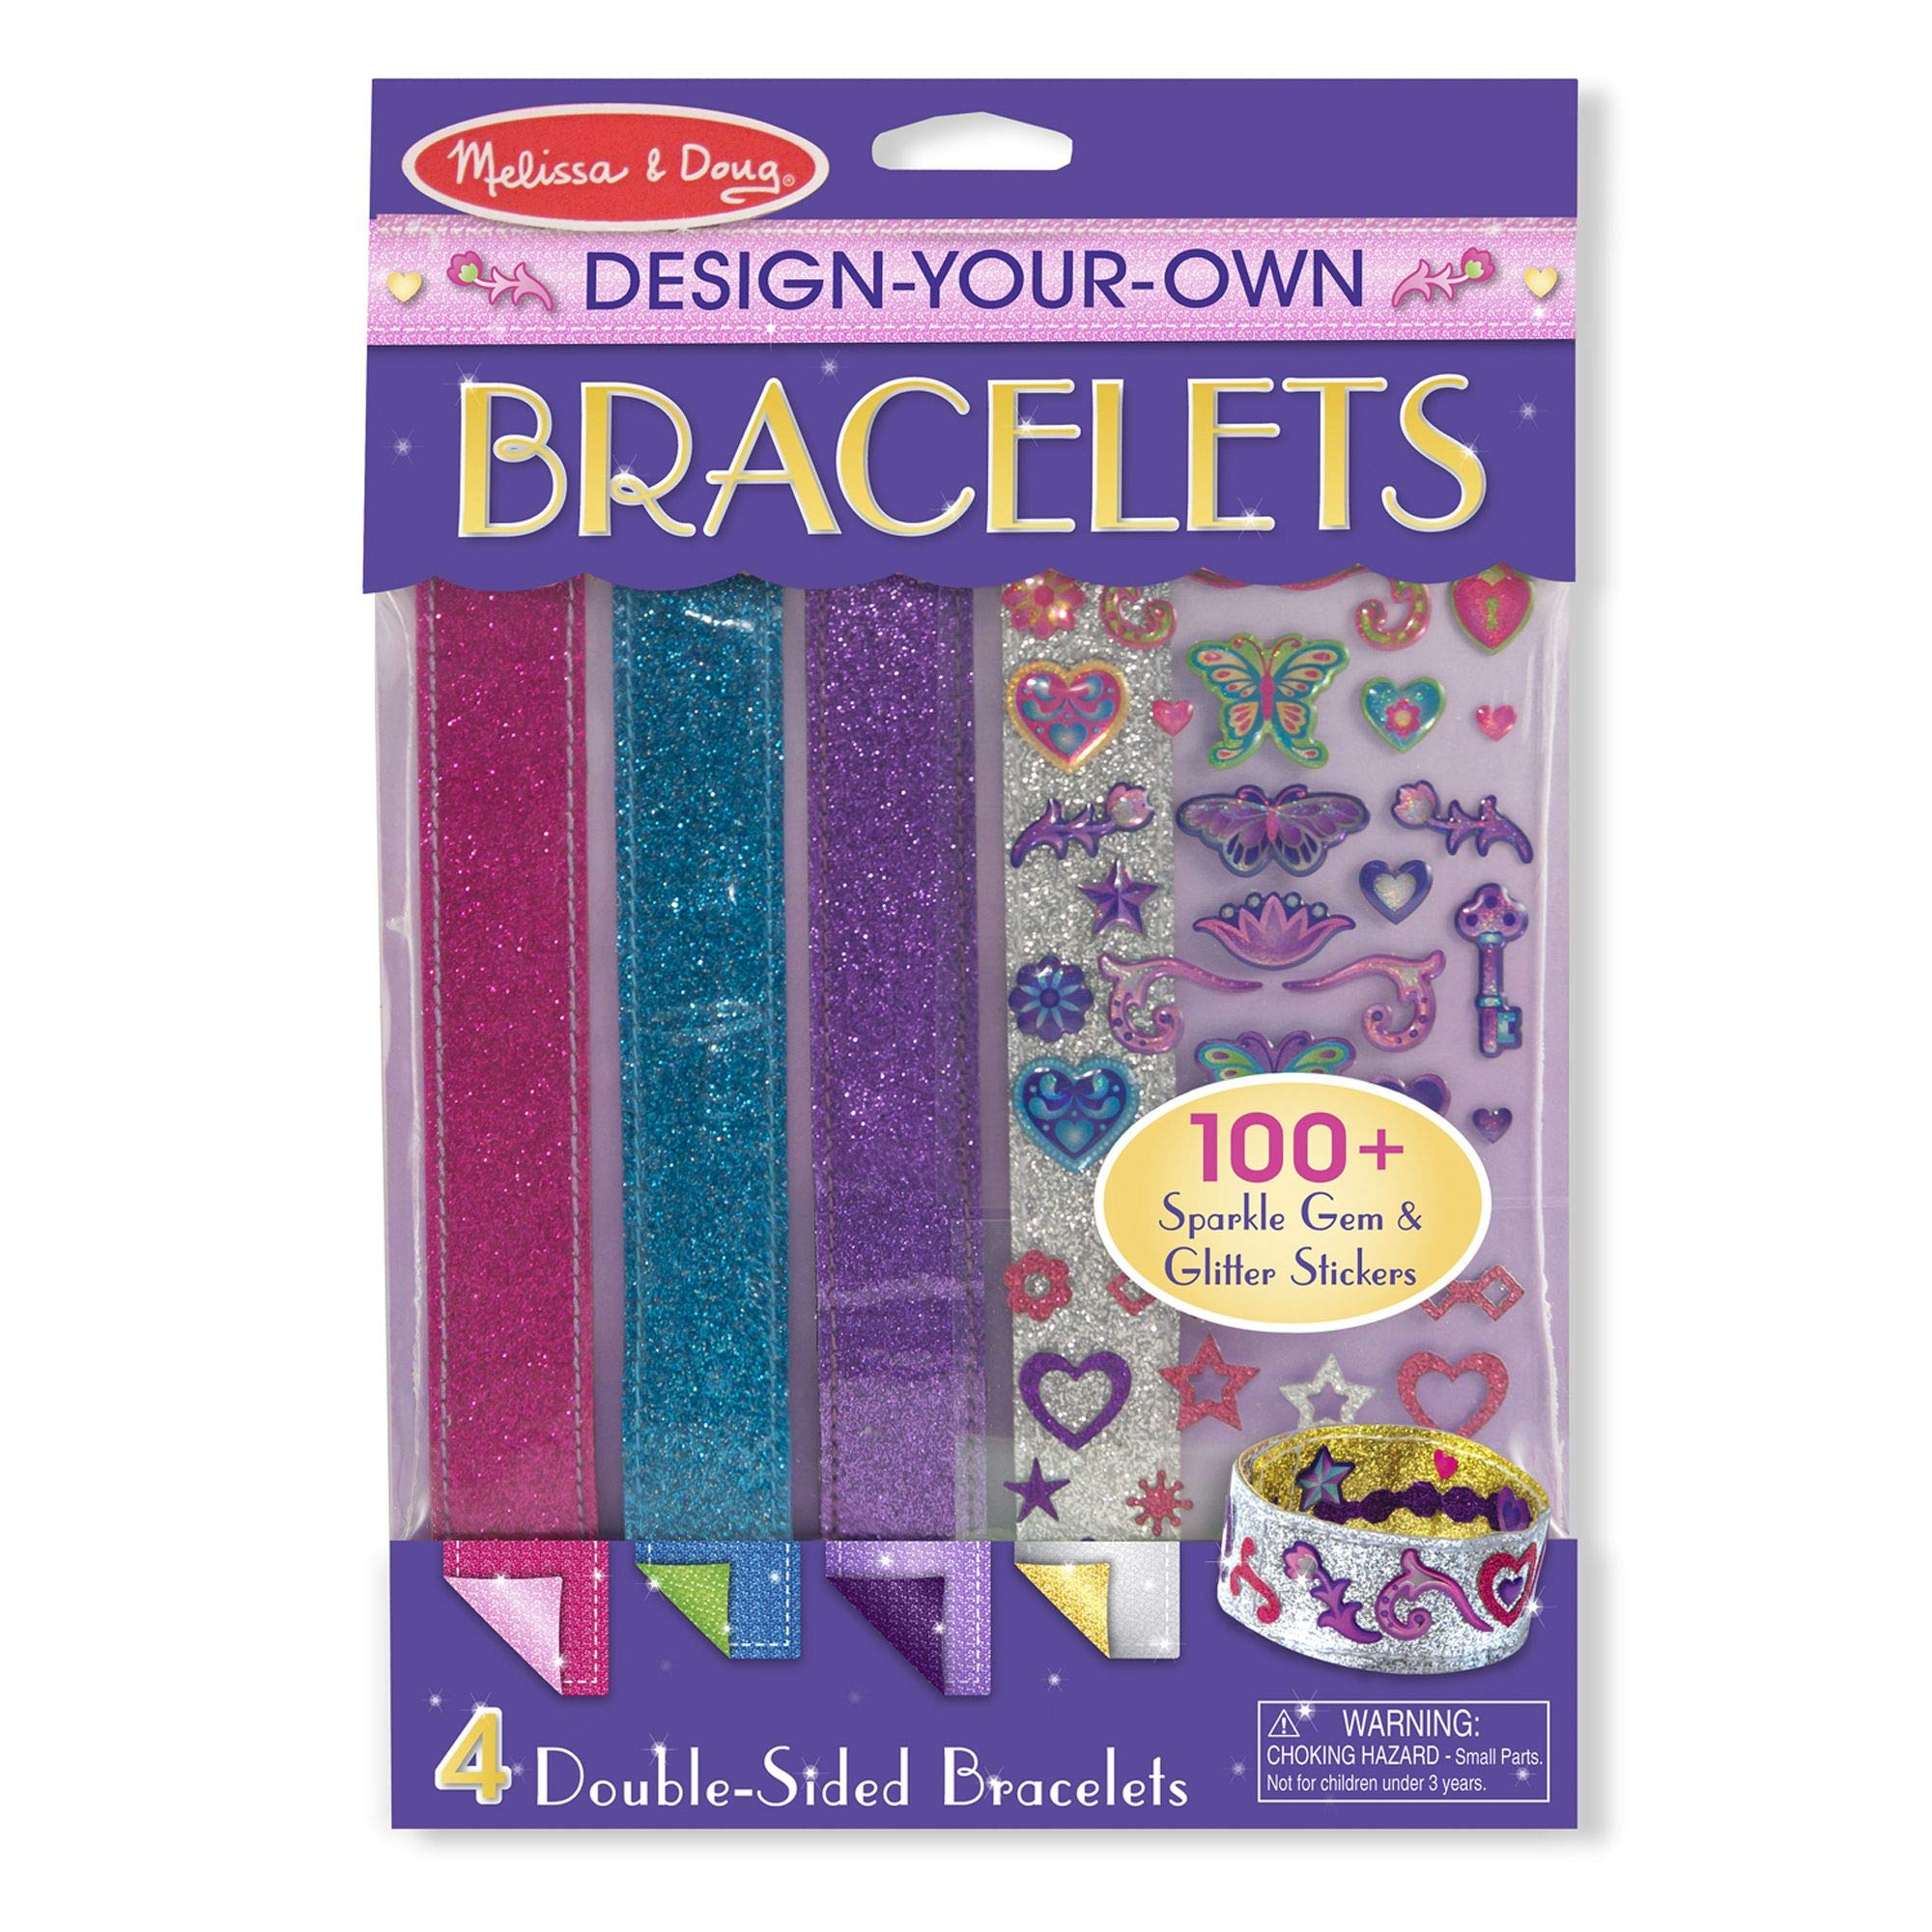 """Melissa & Doug Design-Your-Own Bracelets, Arts & Crafts, Easy Tab Closure, Reversible and Adjustable, 4 Double-Sided Bracelets, 9.7"""" H x 7.15"""" W x 0.25"""" L"""